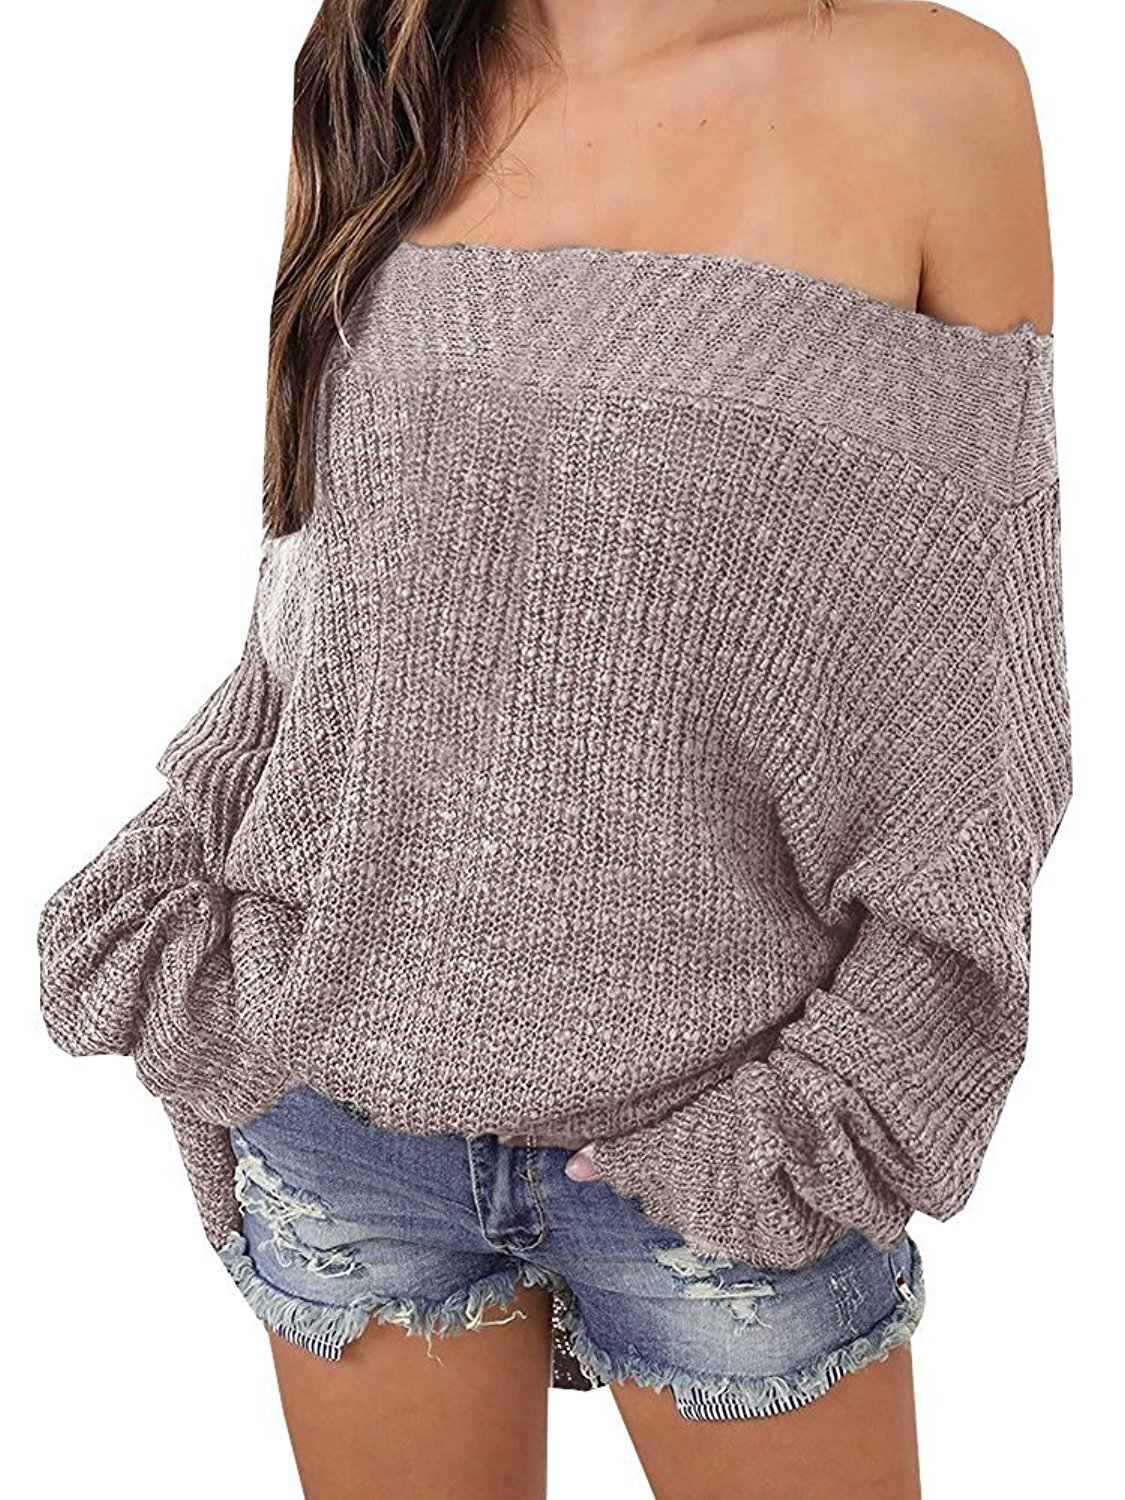 Ruanyu Women's Casual Off Shoulder Loose Pullover Sweater Knit Jumper at Amazon Women's Clothing store: